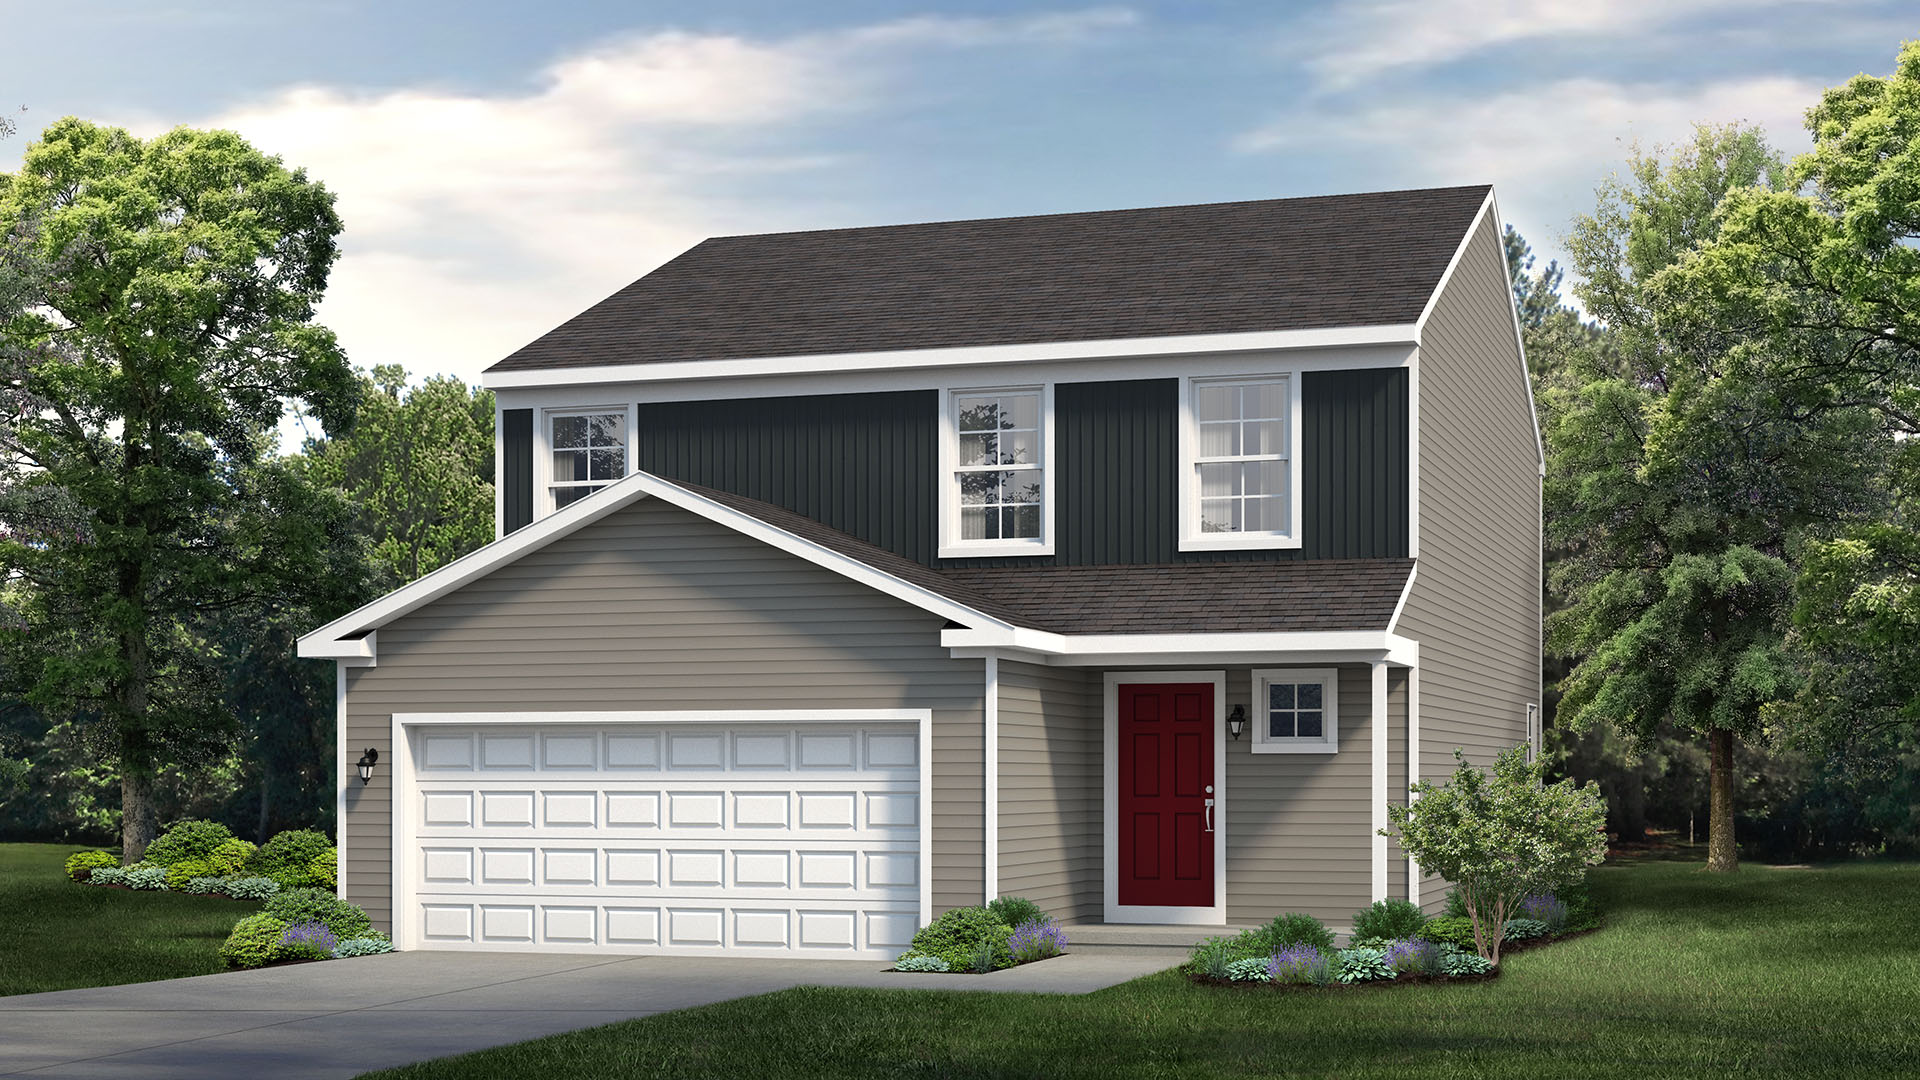 Summer-Ready Martinsburg Homes Coming Soon to Edgewood Acres